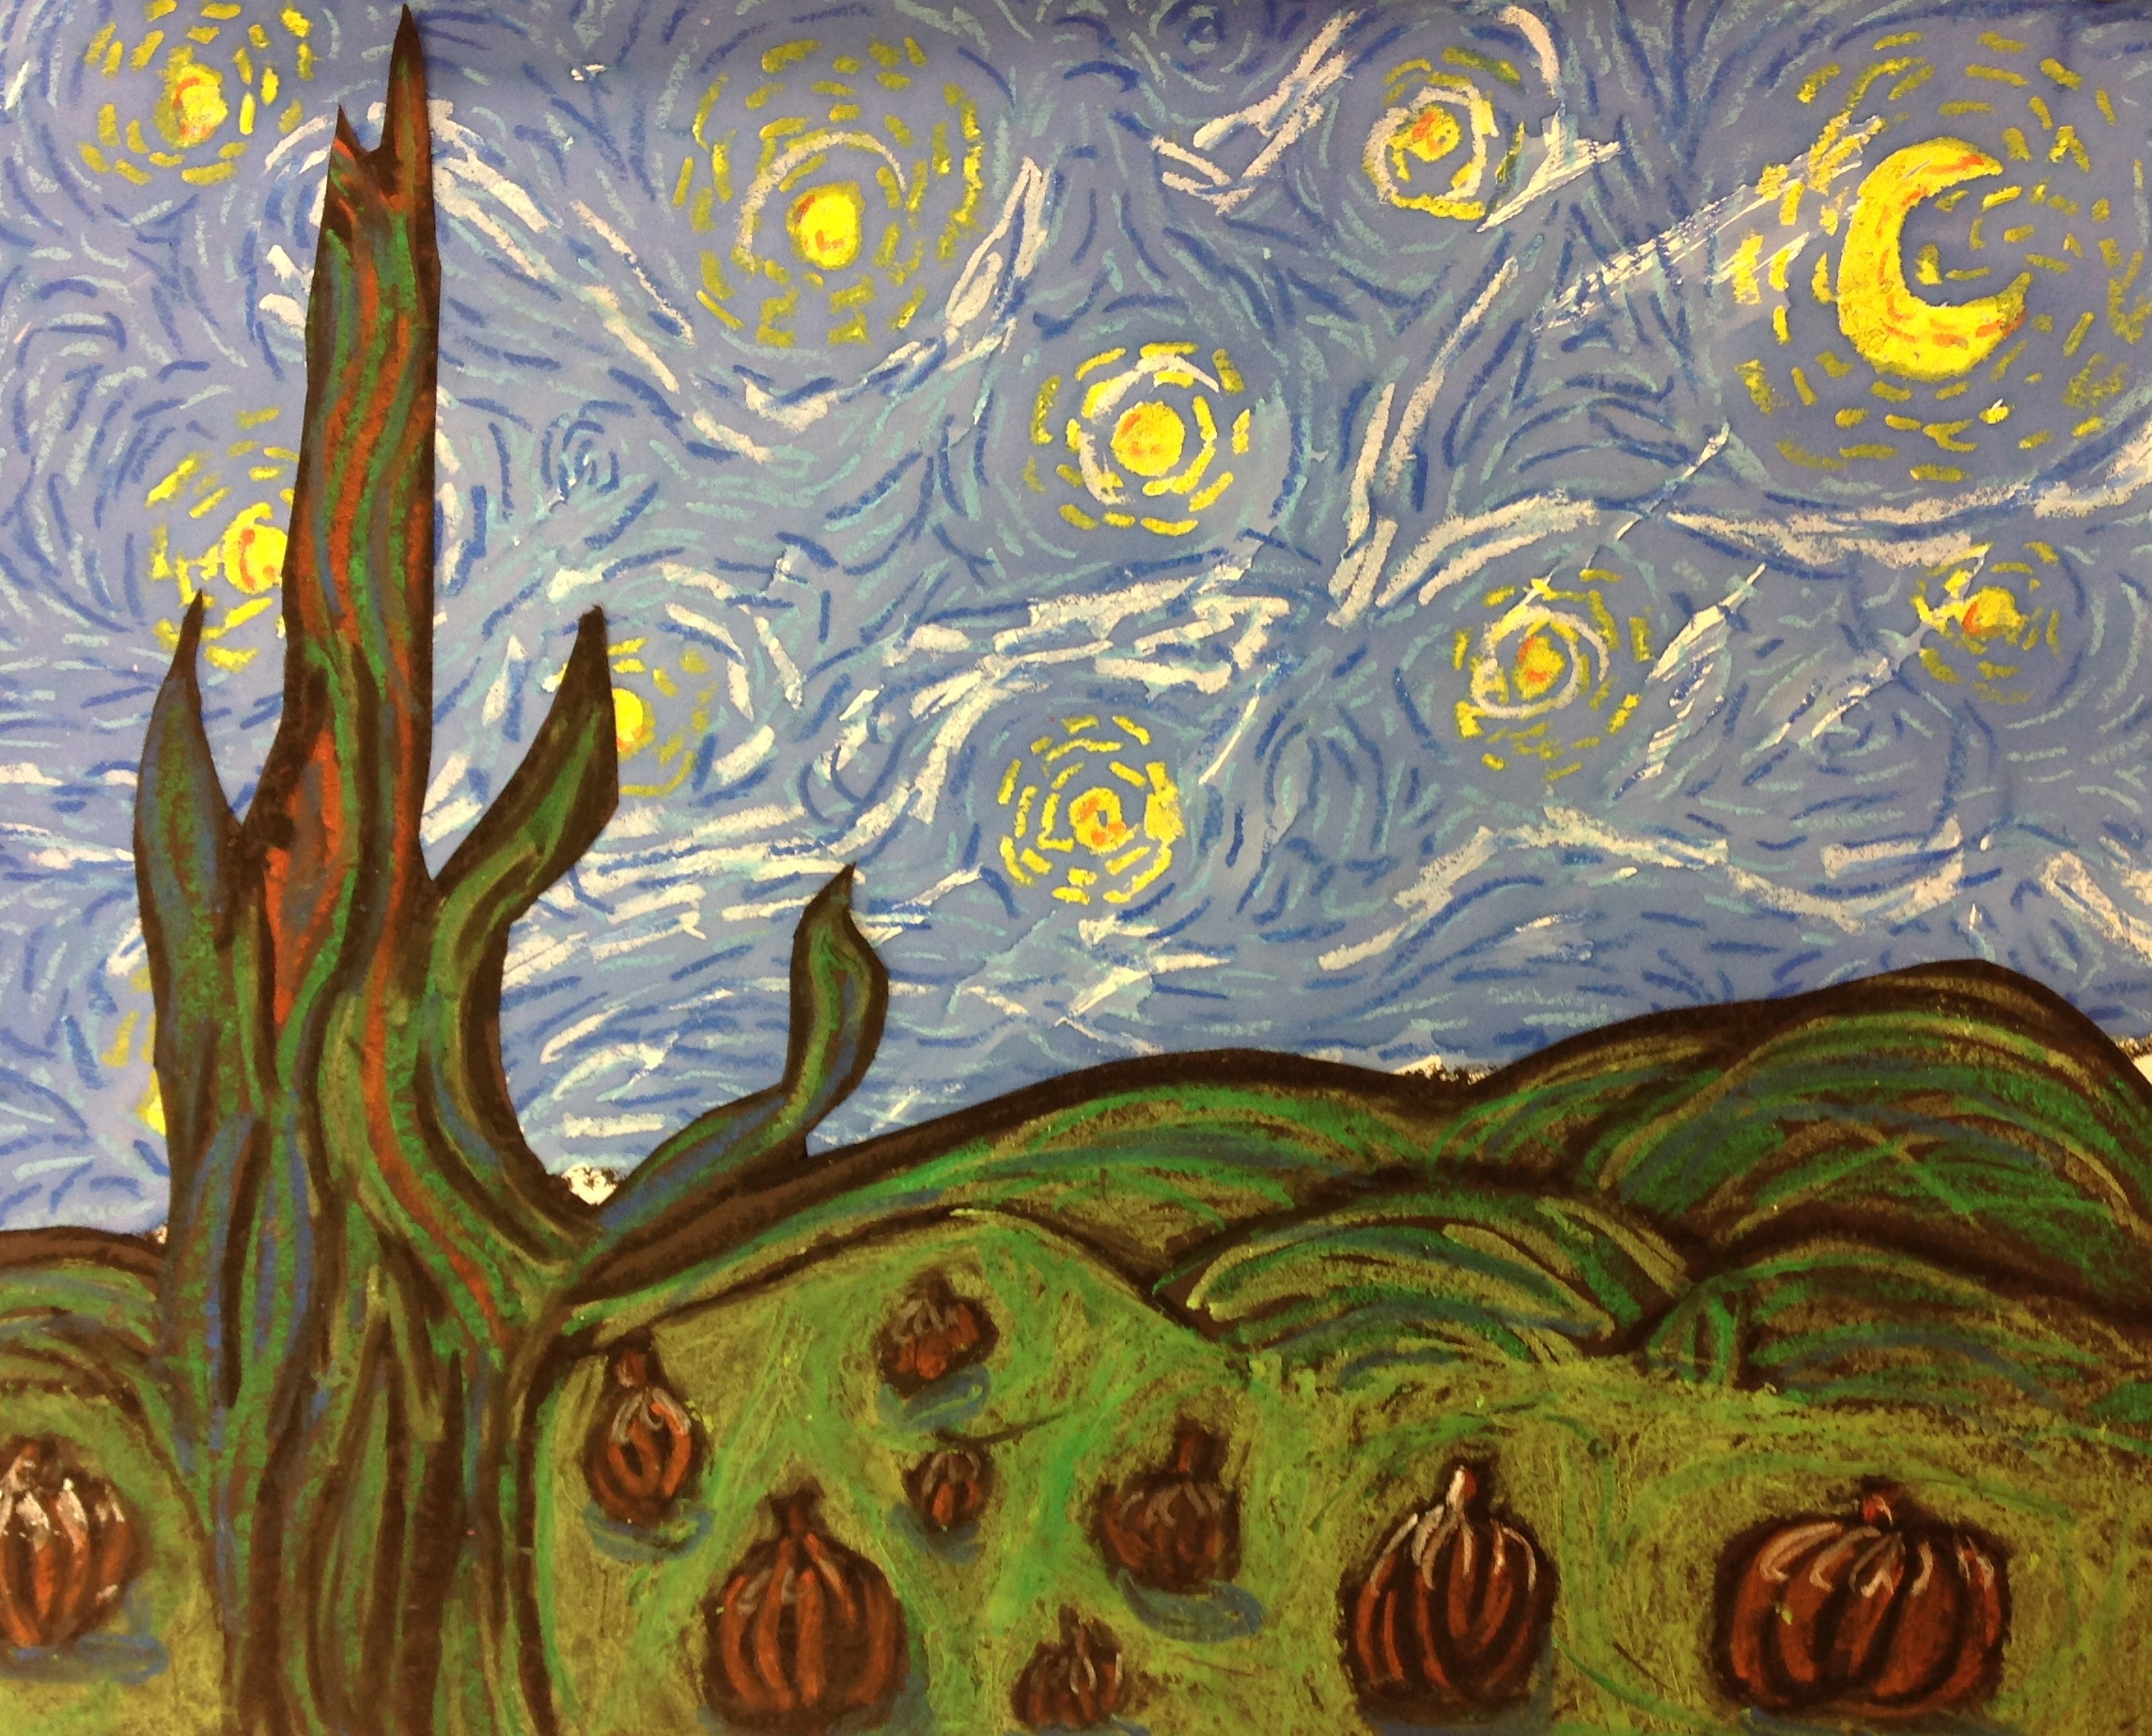 vincent van gogh essays starry night Free essay: an analysis on starry night (1889) of vincent van gogh introduction  the life span of 37 years saw vincent willem van gogh (vincent) in creating.